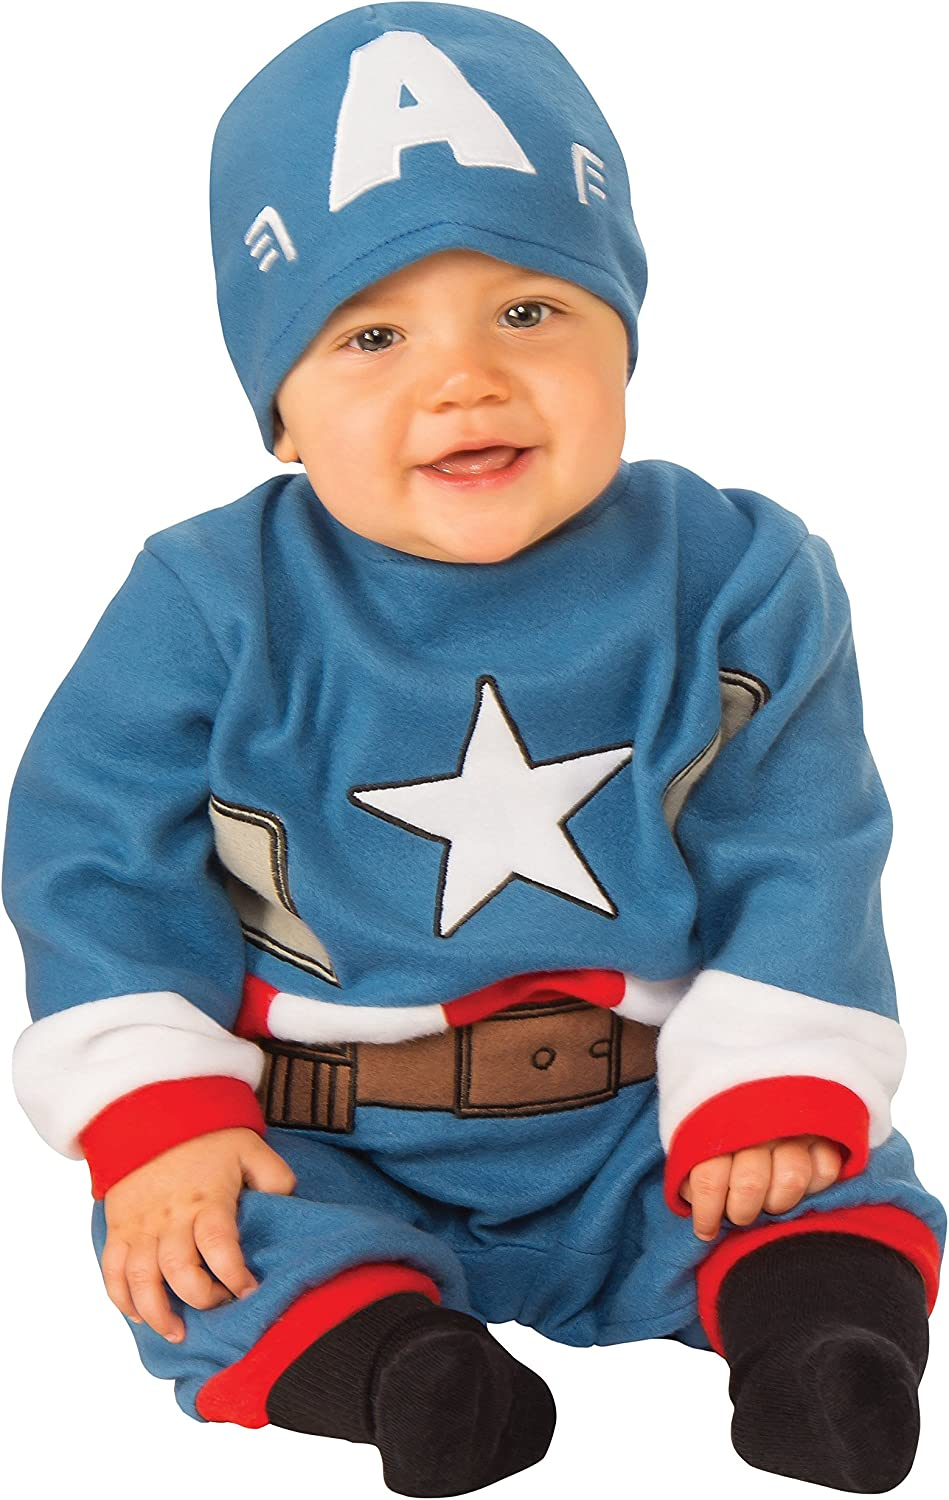 Amazon Com Rubie S Baby S Marvel Captain America Romper Clothing Captain marvel is the perfect way to show that you're more than just a girl; rubie s baby s marvel captain america romper